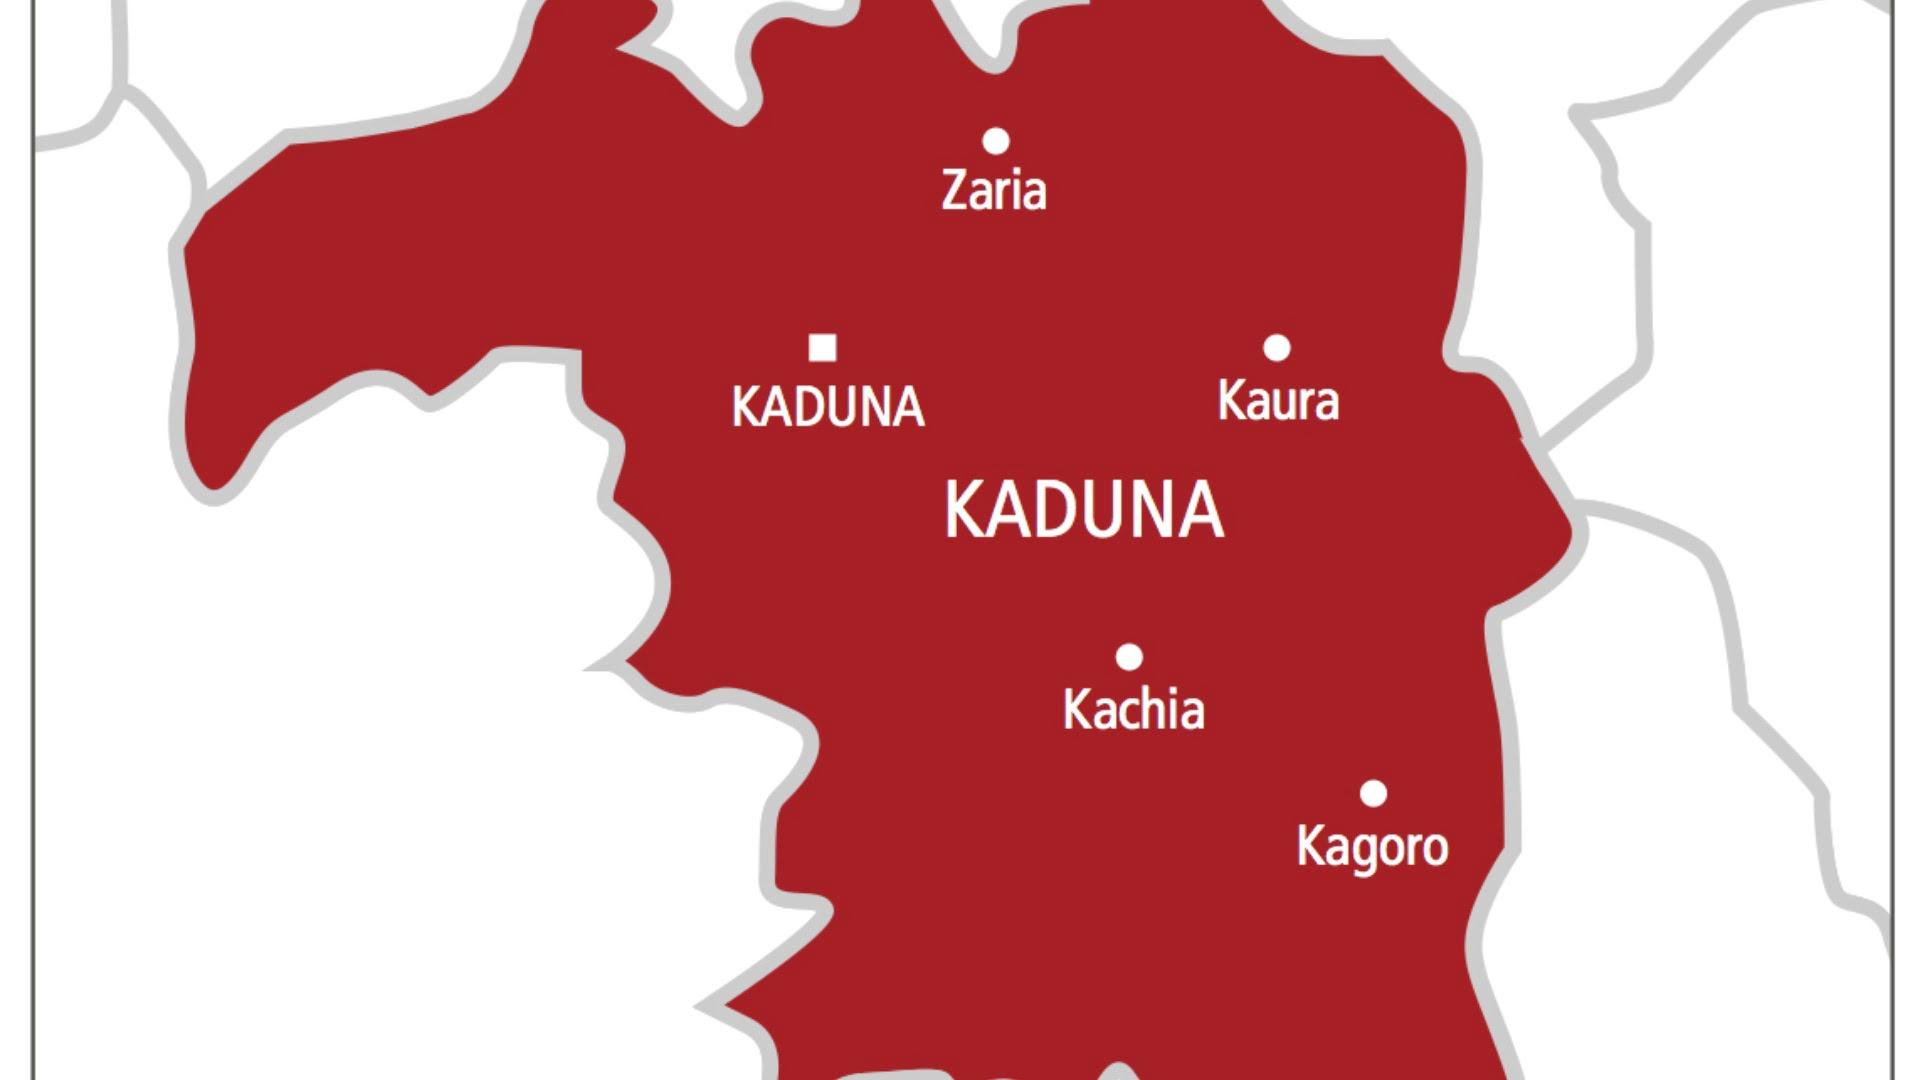 Boko Haram killings: Nigeria heading for Famine - Kaduna farmers